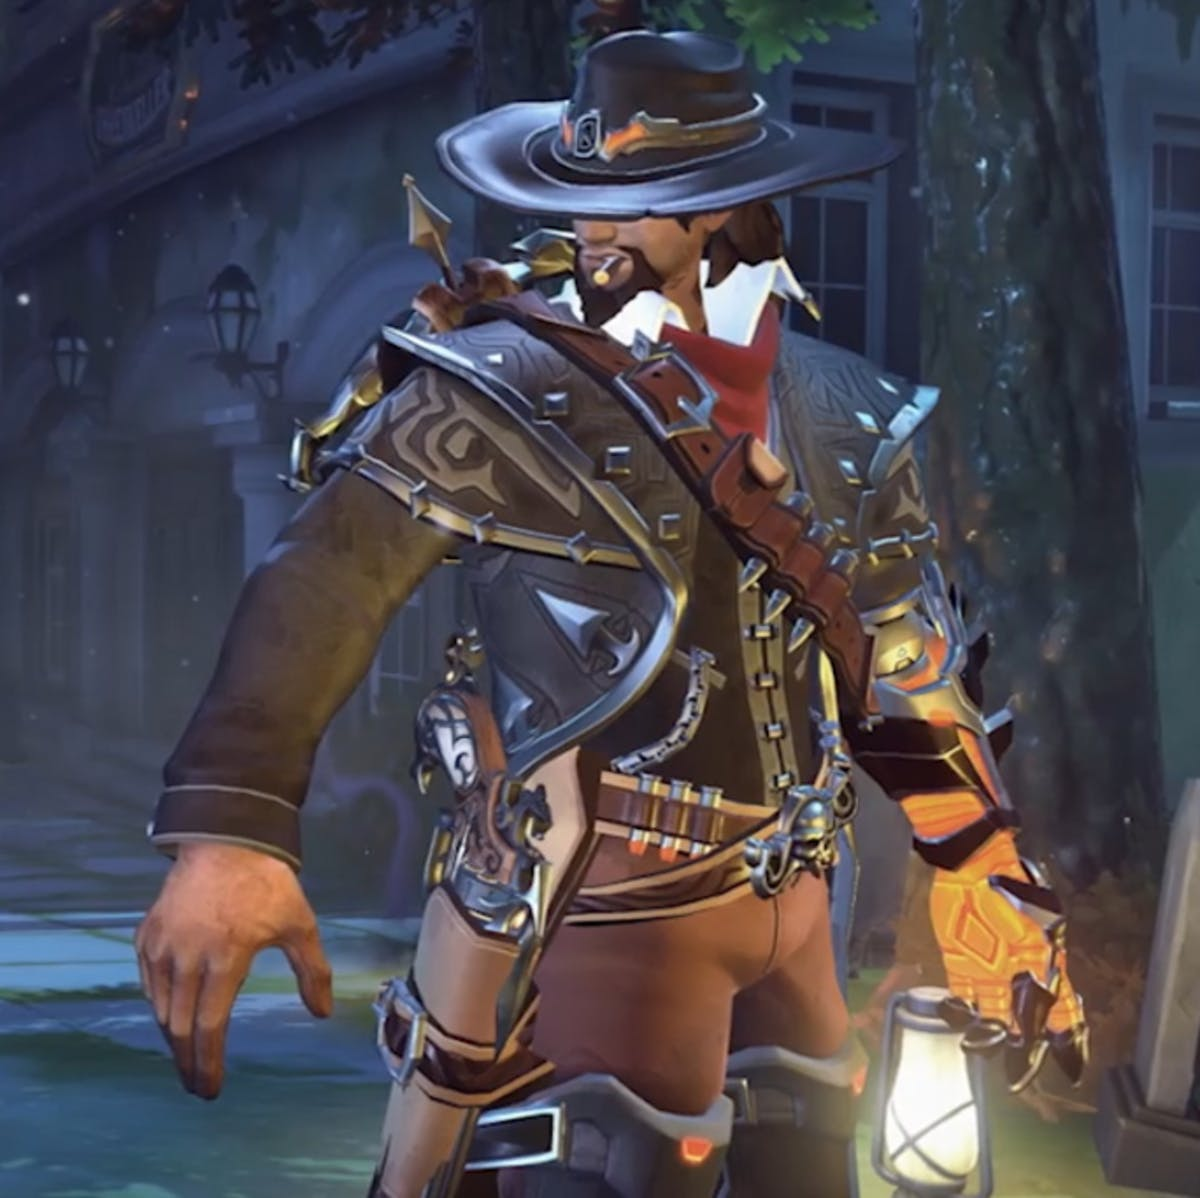 'Overwatch' Halloween event might be a disappointment, blame 'Overwatch 2'